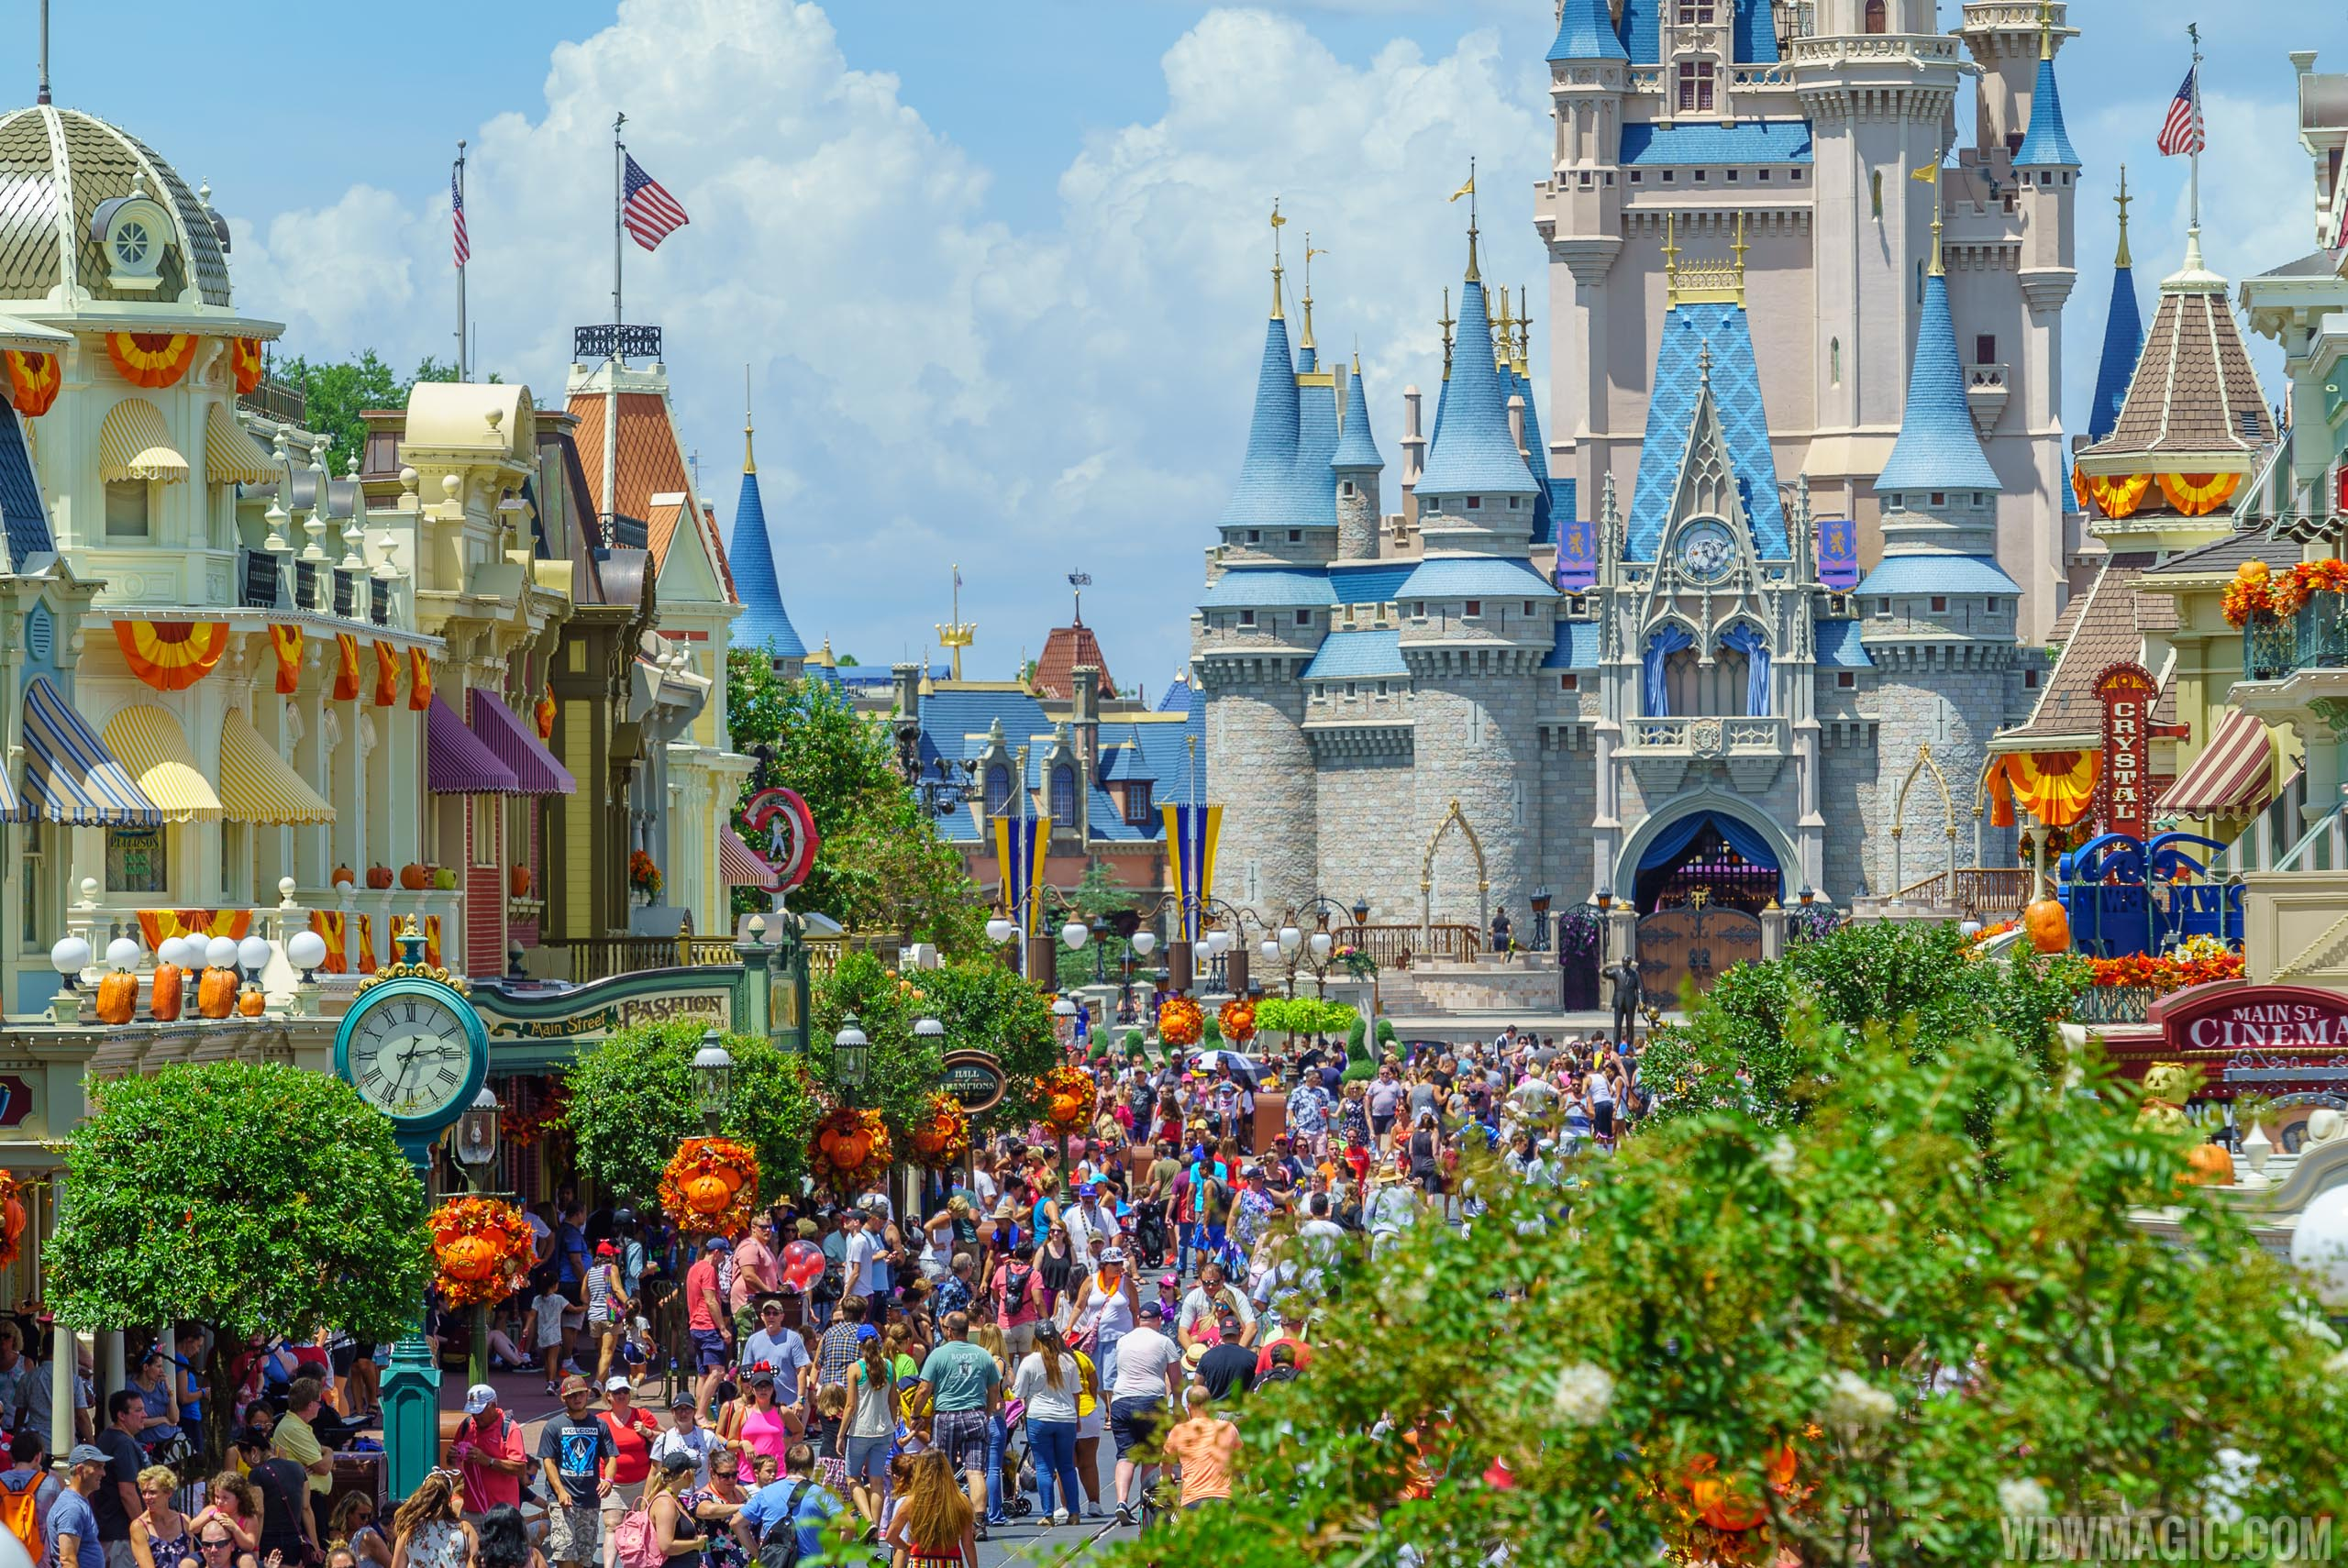 Halloween Party Magic Kingdom 2020 Magic Kingdom to celebrate Halloween beginning September 15